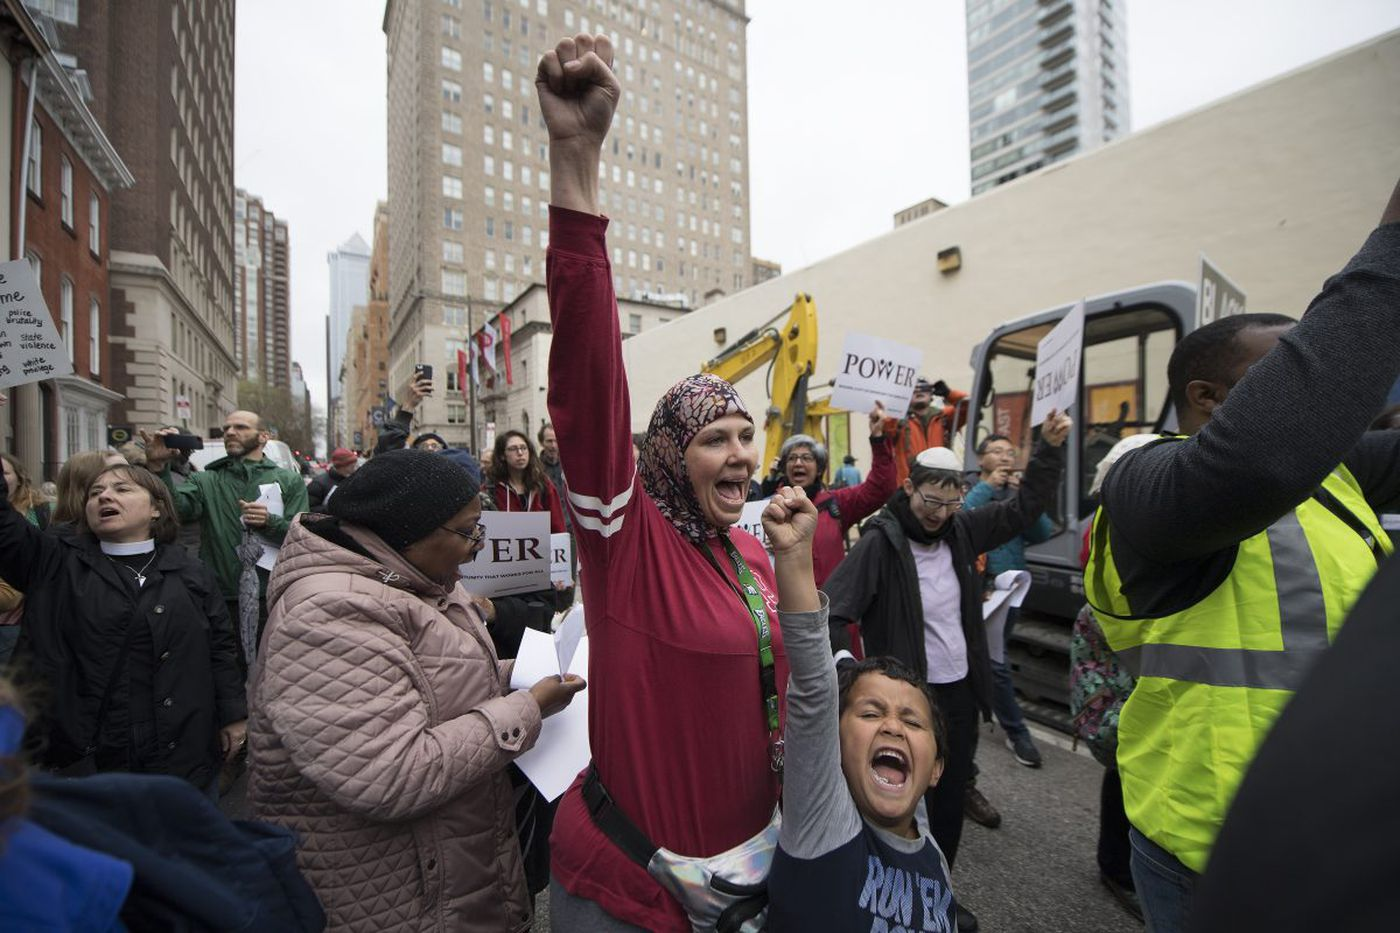 Starbucks protests continue, DA says Meek Mill should get new trial | Morning Newsletter